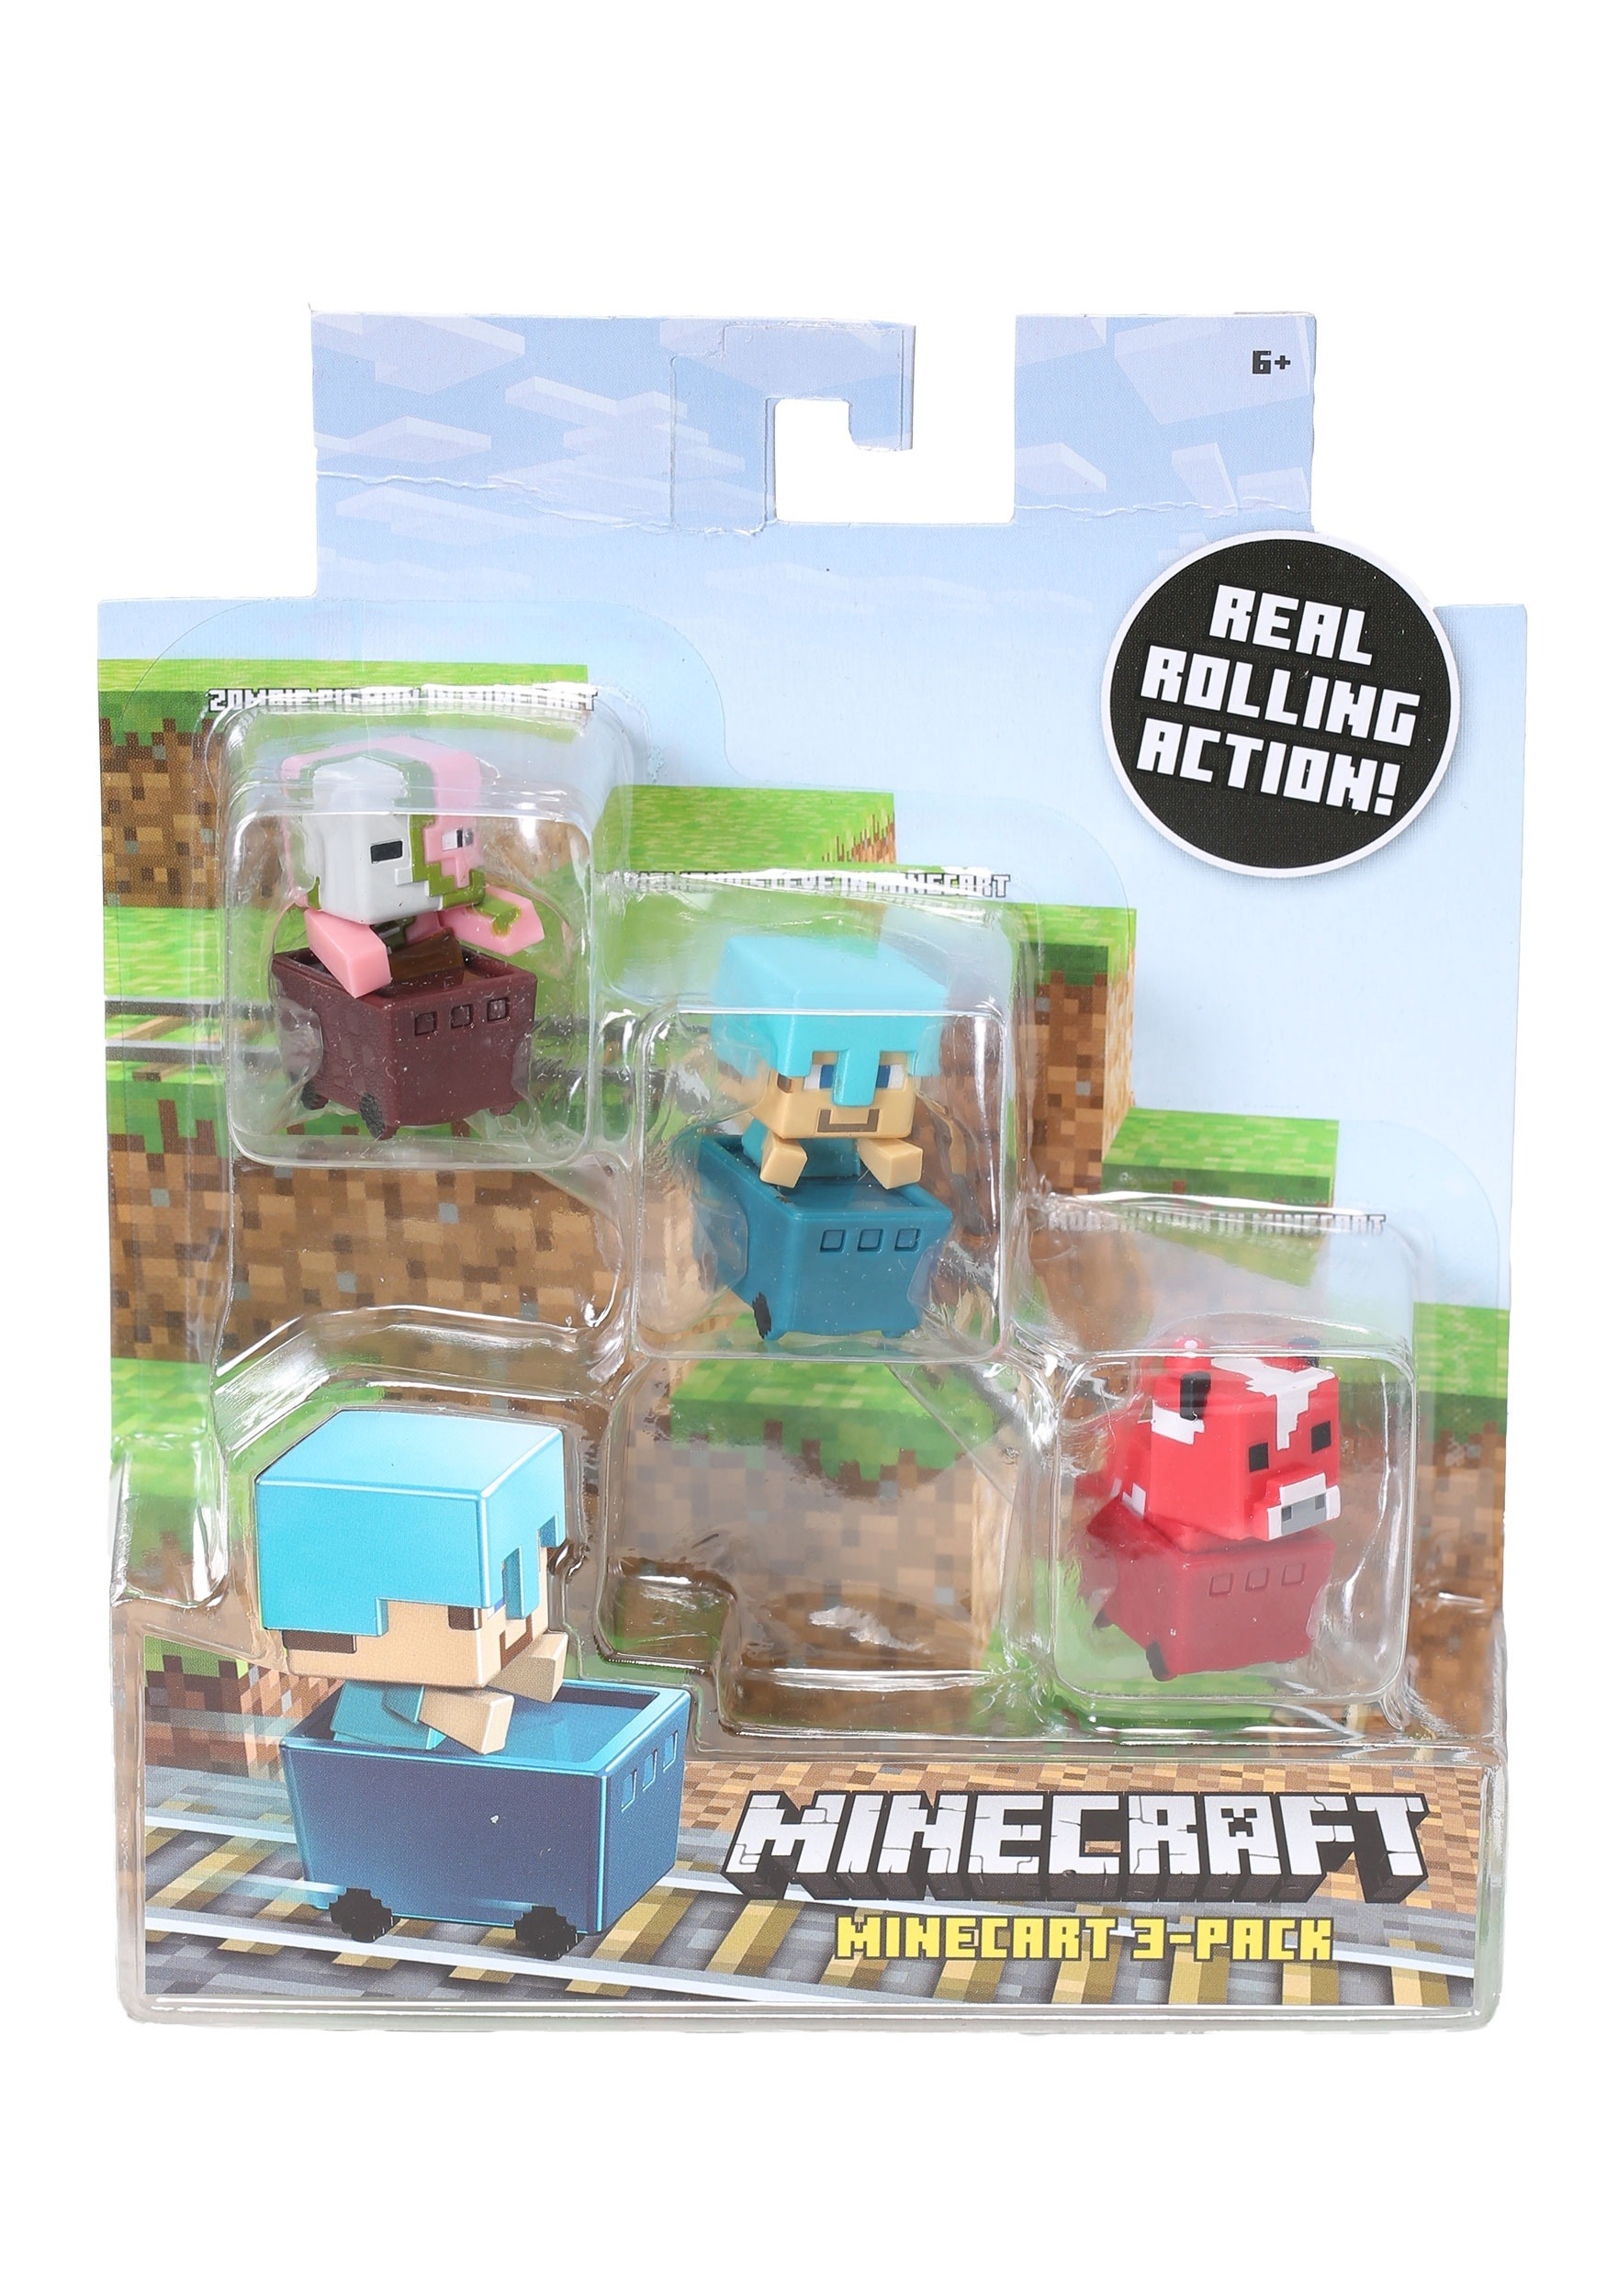 Minecraft Ocelot, Zombie, Enderman Figure 3 Pack MLFFK80